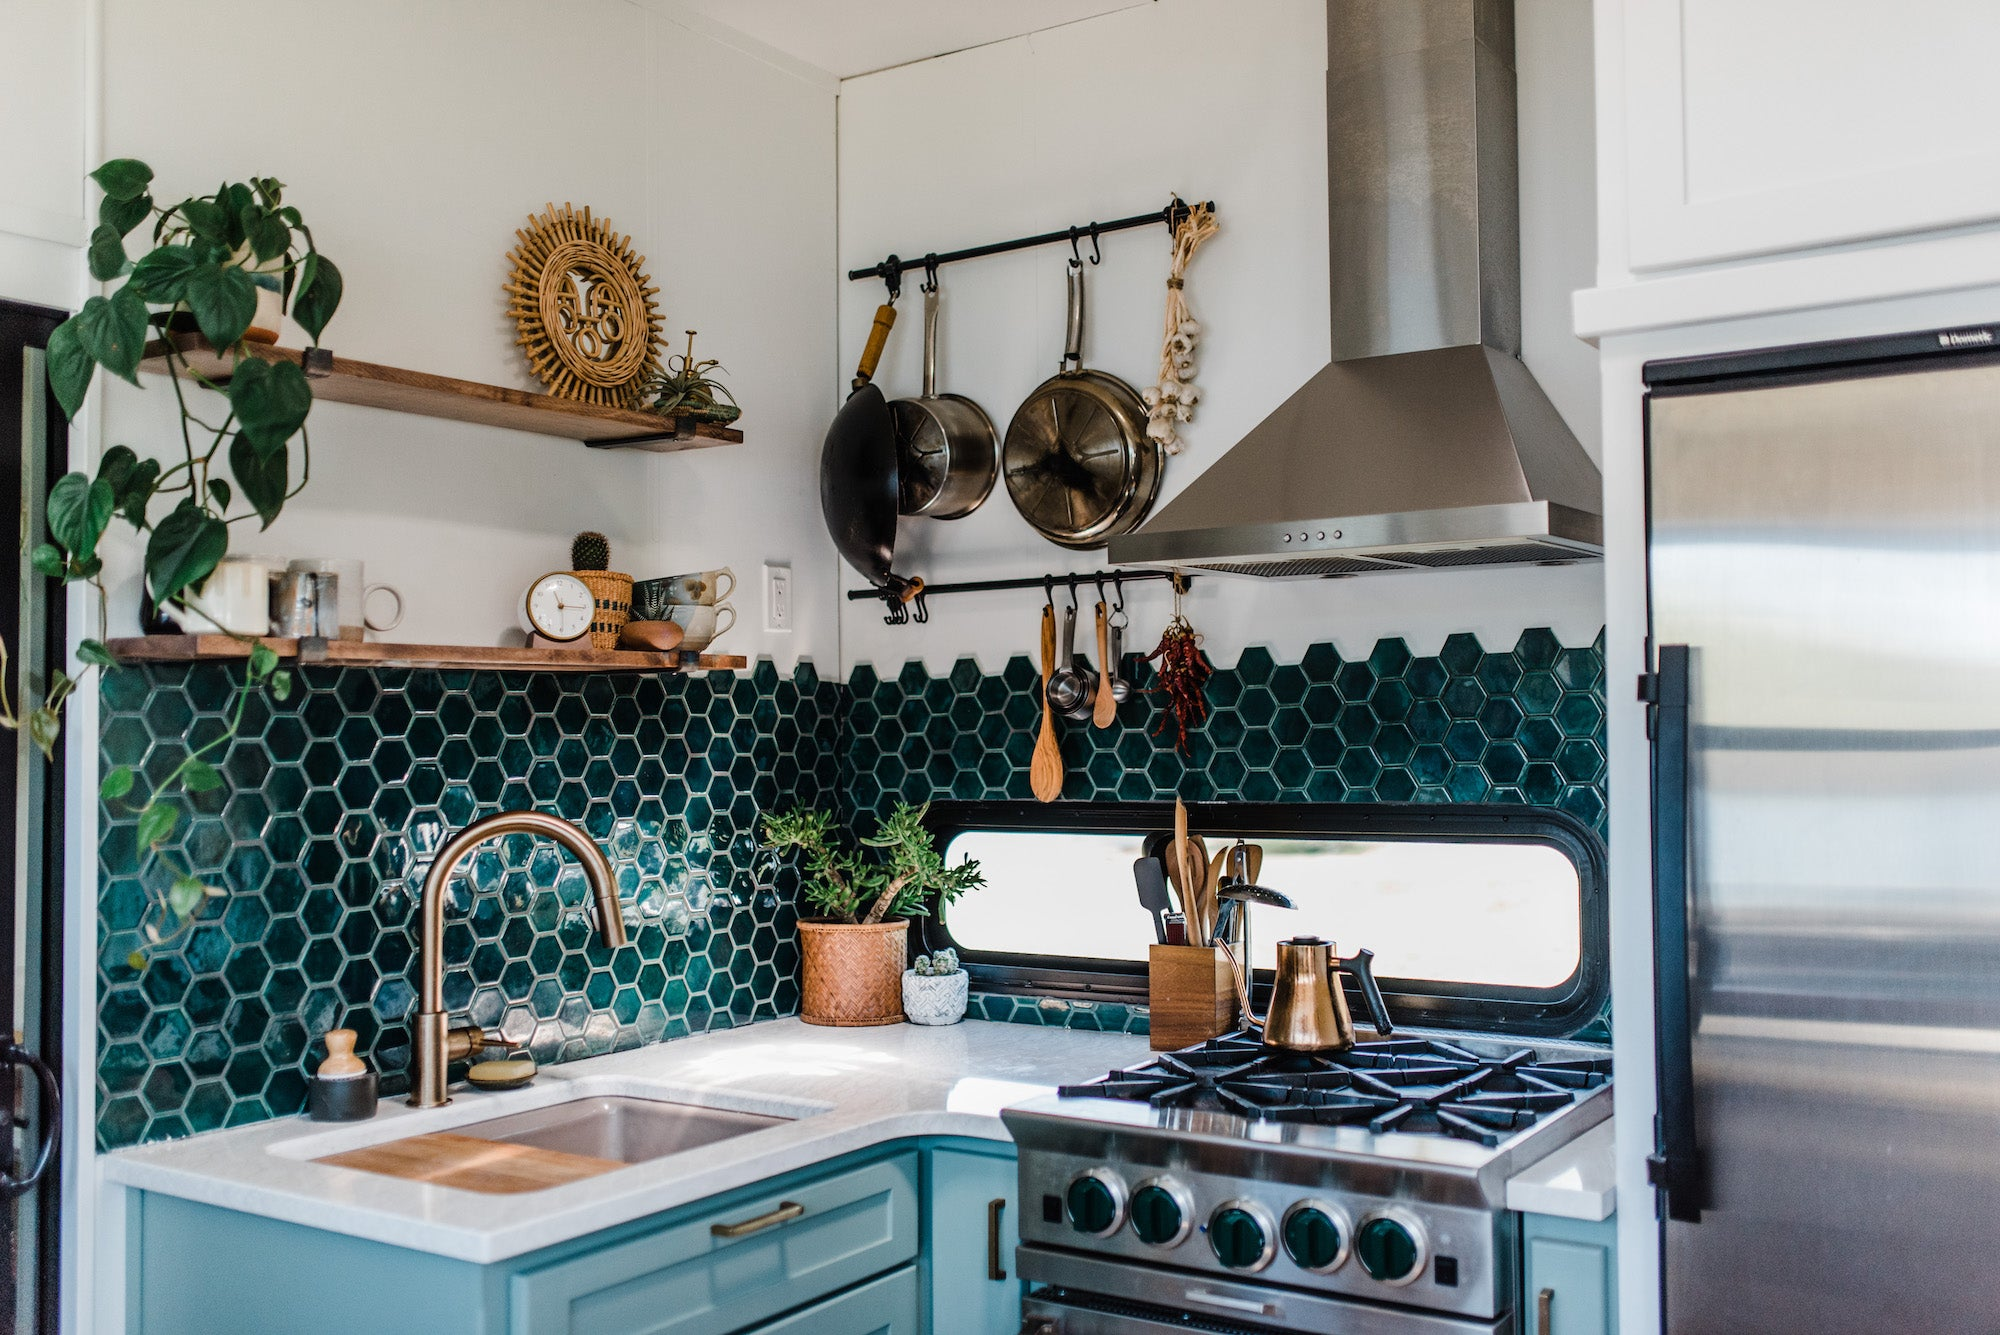 Kitchen Accent Teal Tile